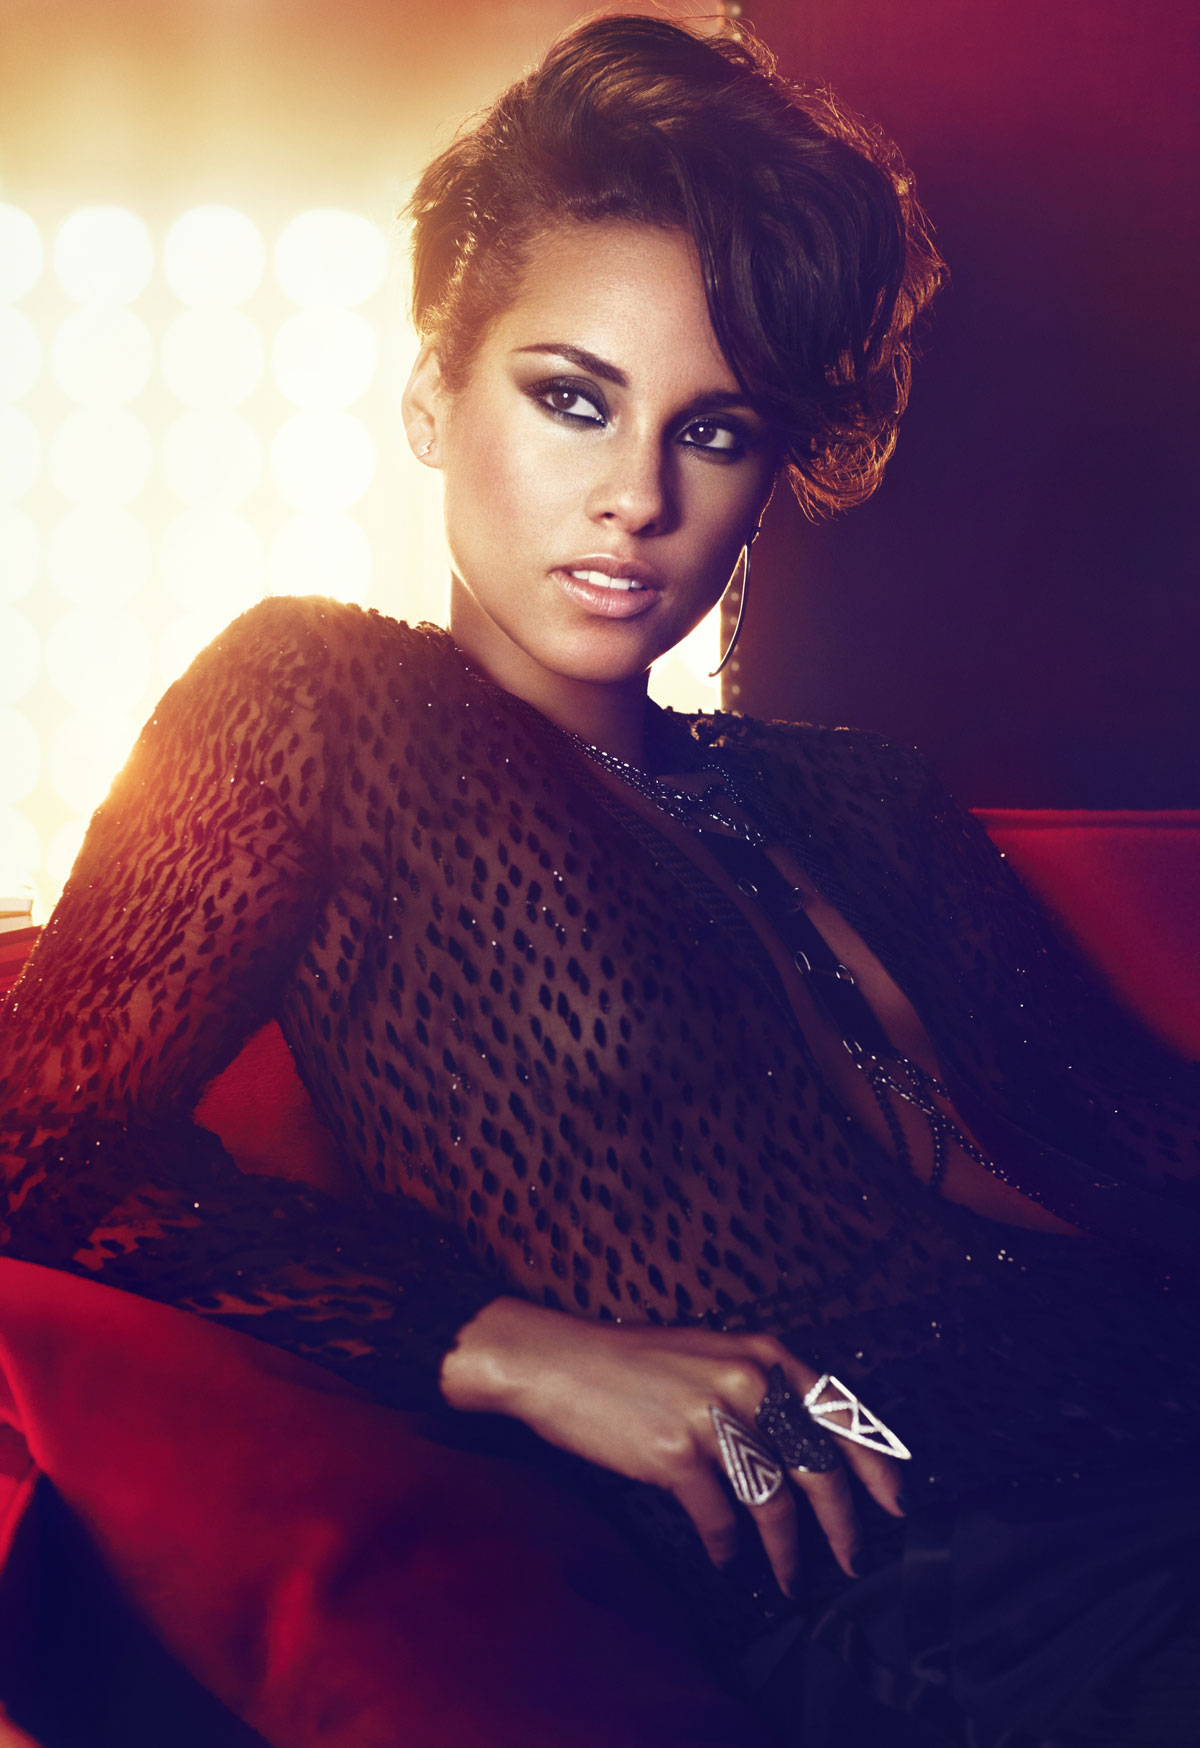 ALICIA KEYS - Girl on Fire Promo Shoot and CD Cover ... Alicia Keys Songs